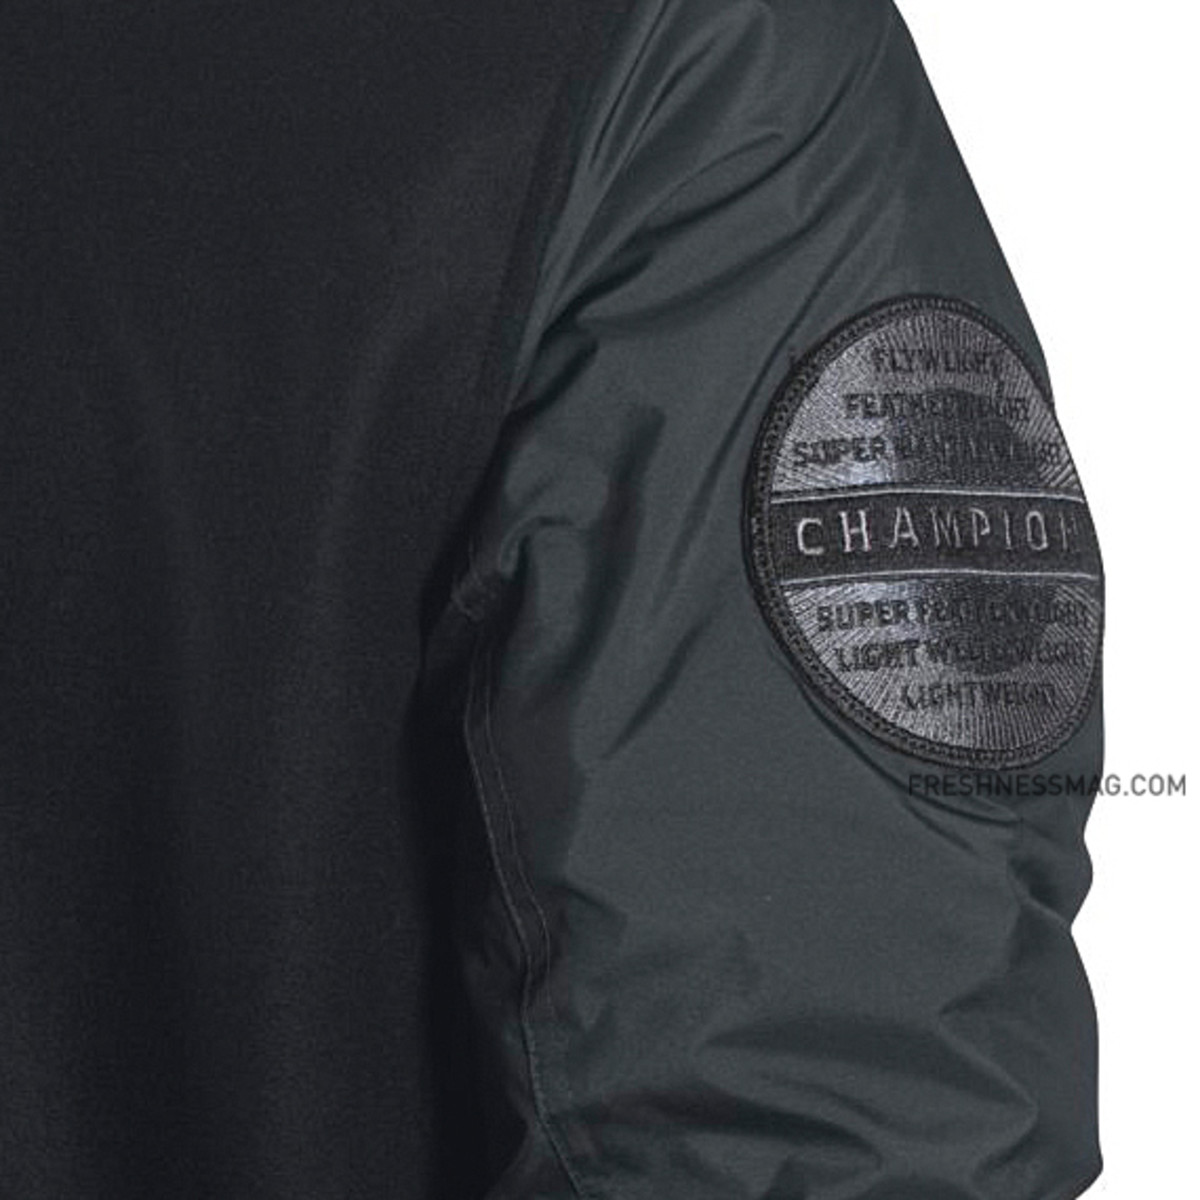 Nike-Manny-Pacquiao-Destroyer-jacket-439819-010-05